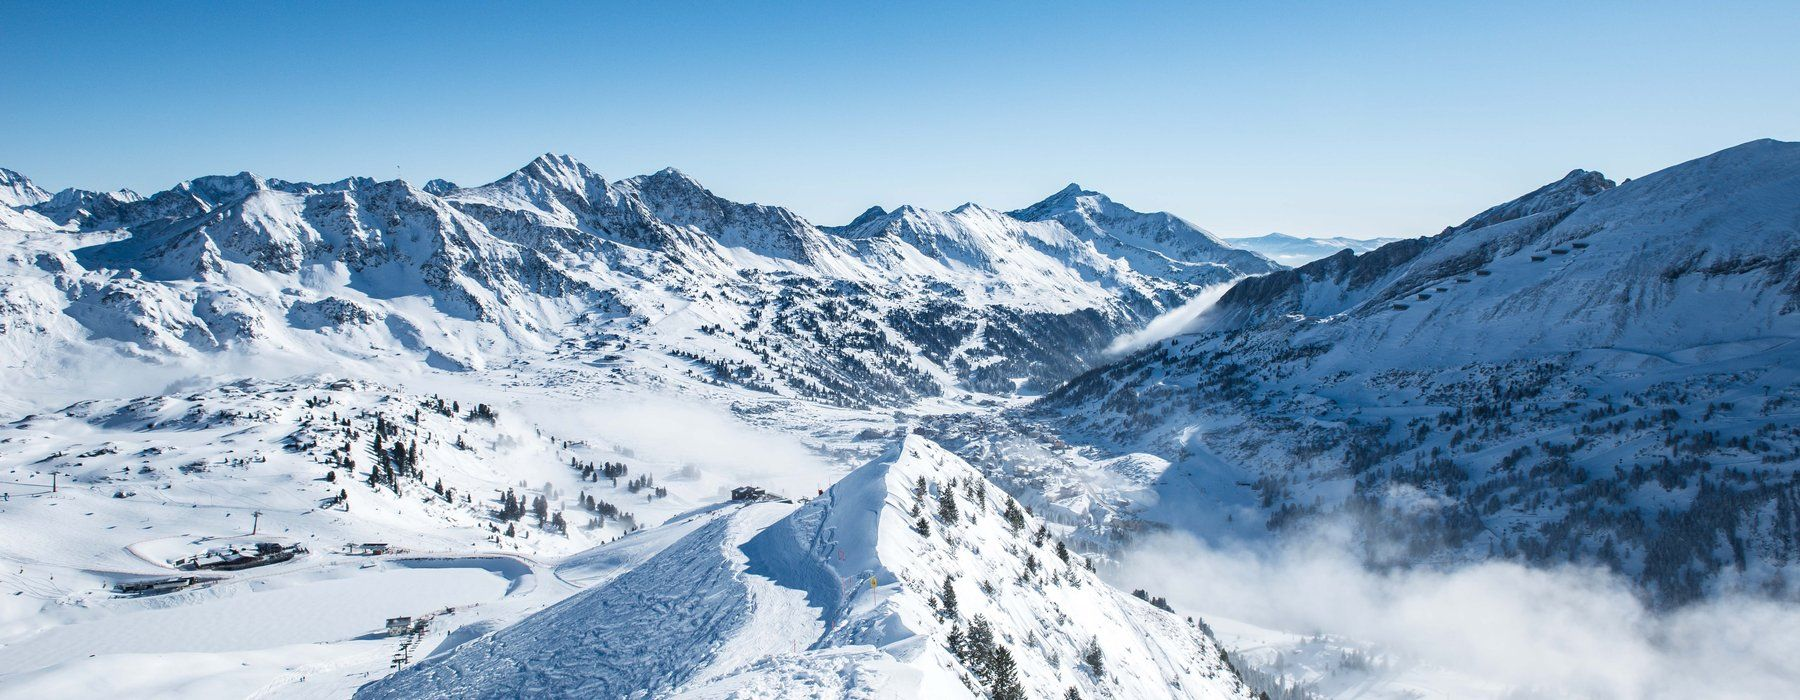 Private 6-Days Ski Tour with Avalanche Course Zederhaus, Lungau, Tyrol, Austria #7c6e4f2f-e2ae-4f10-811e-c07009c170f4